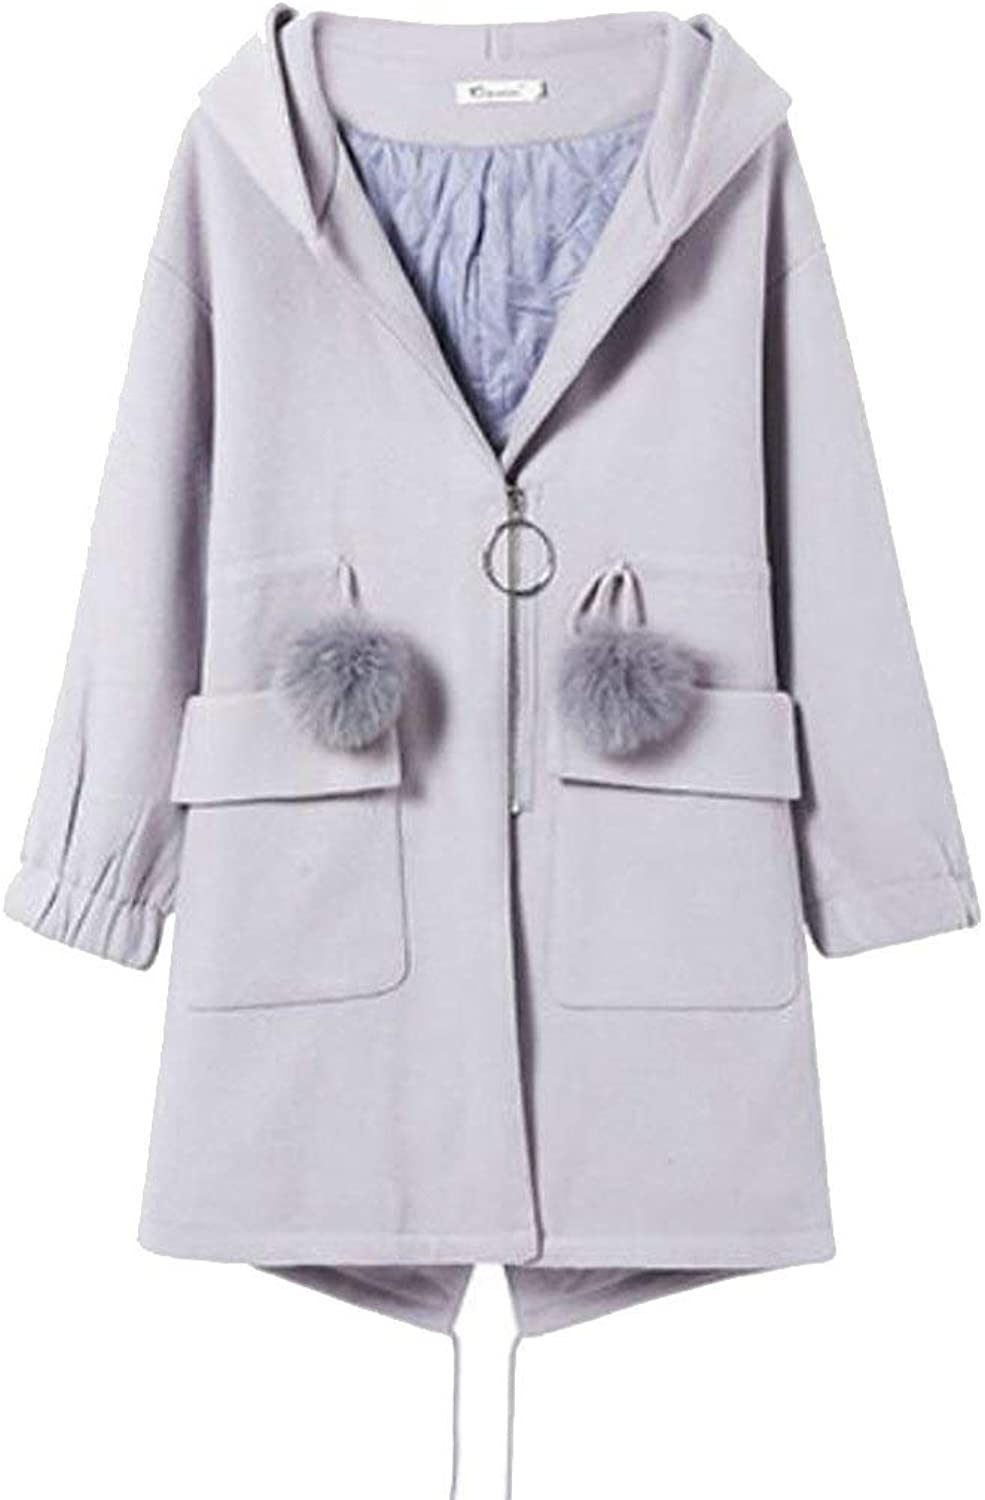 SELXWomen Thicken Solid Slim Zip Pockets Hoodie Pea Coat Overcoats